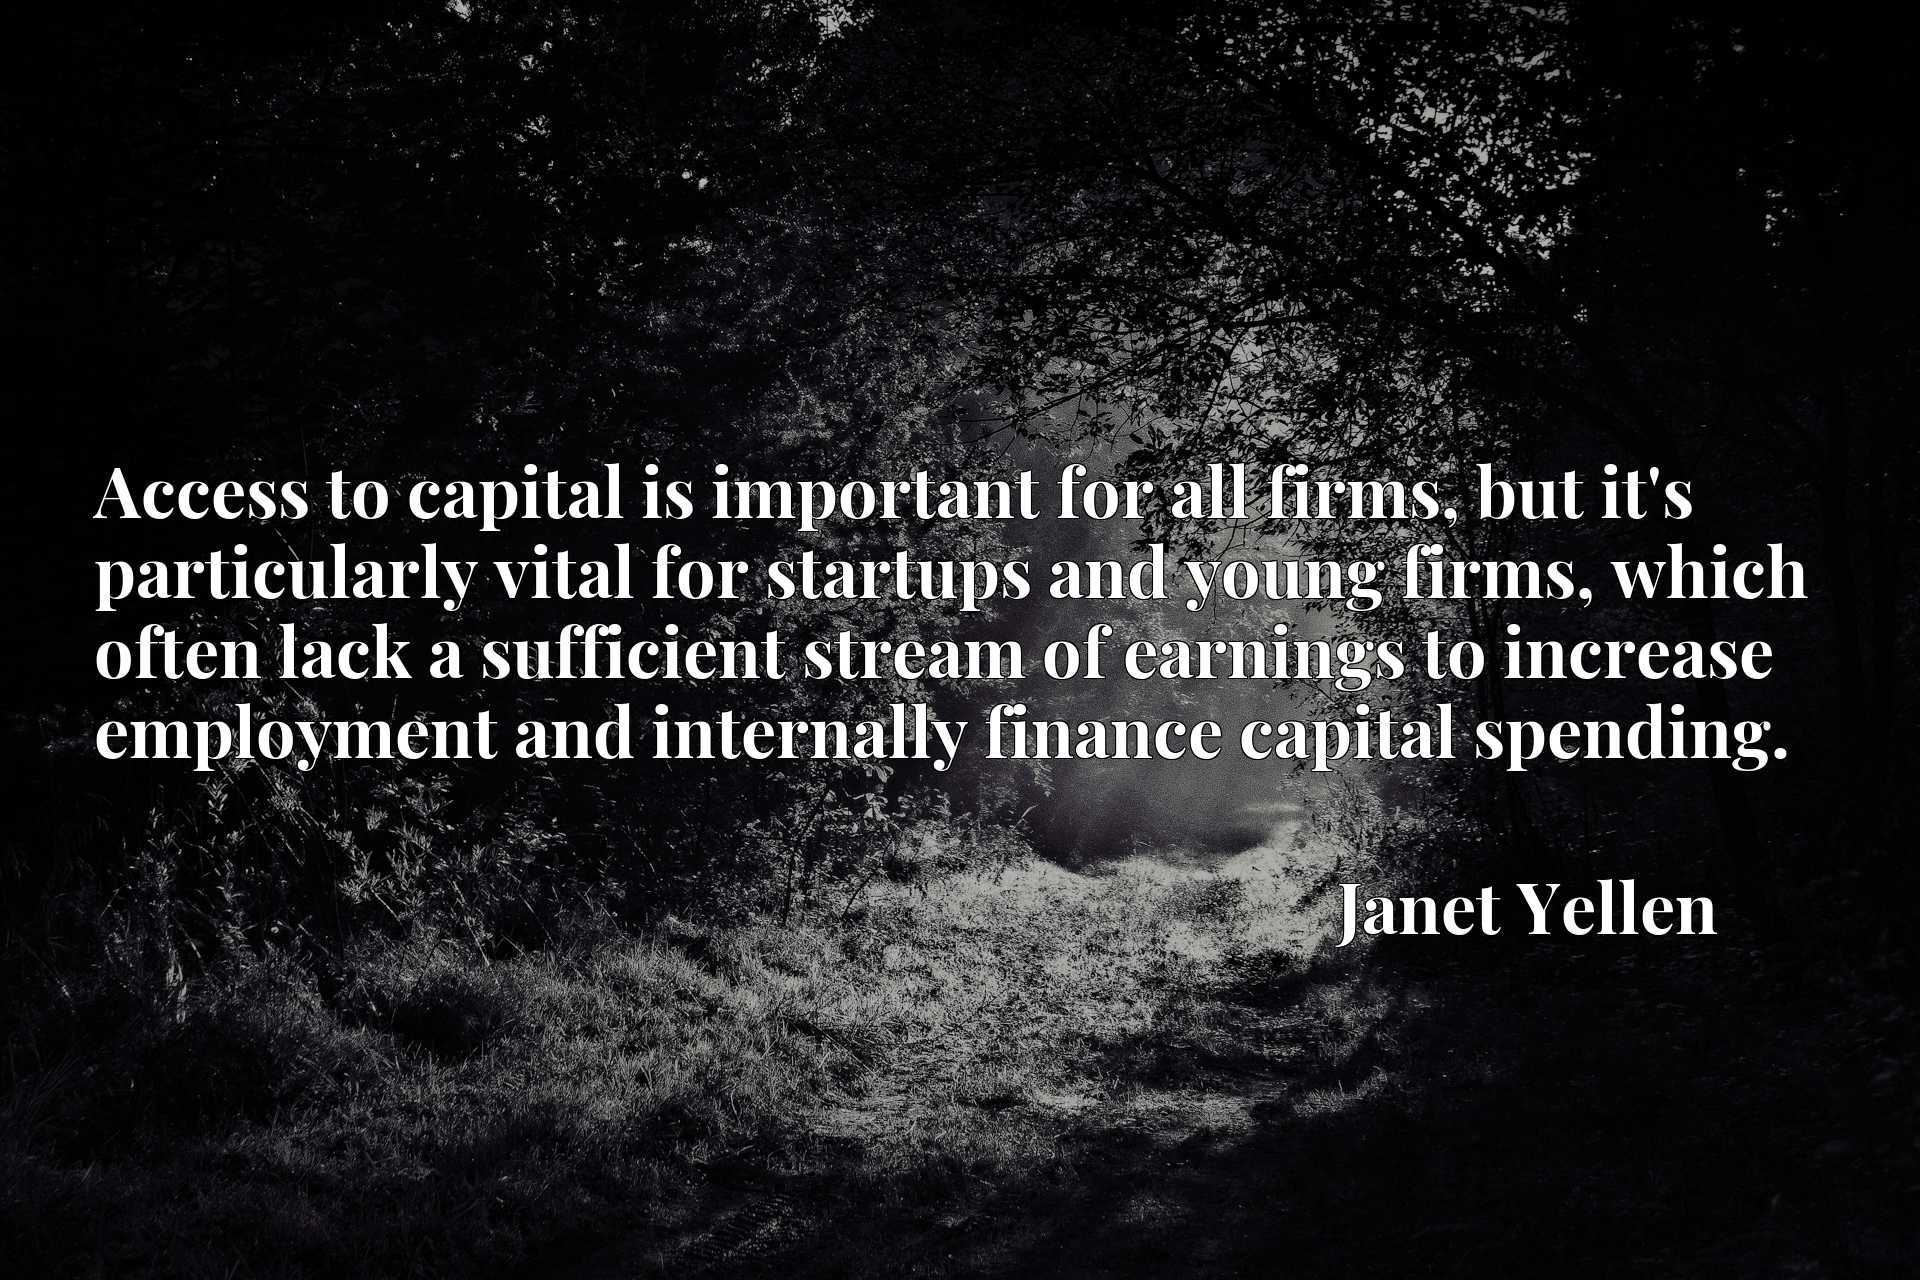 Access to capital is important for all firms, but it's particularly vital for startups and young firms, which often lack a sufficient stream of earnings to increase employment and internally finance capital spending.